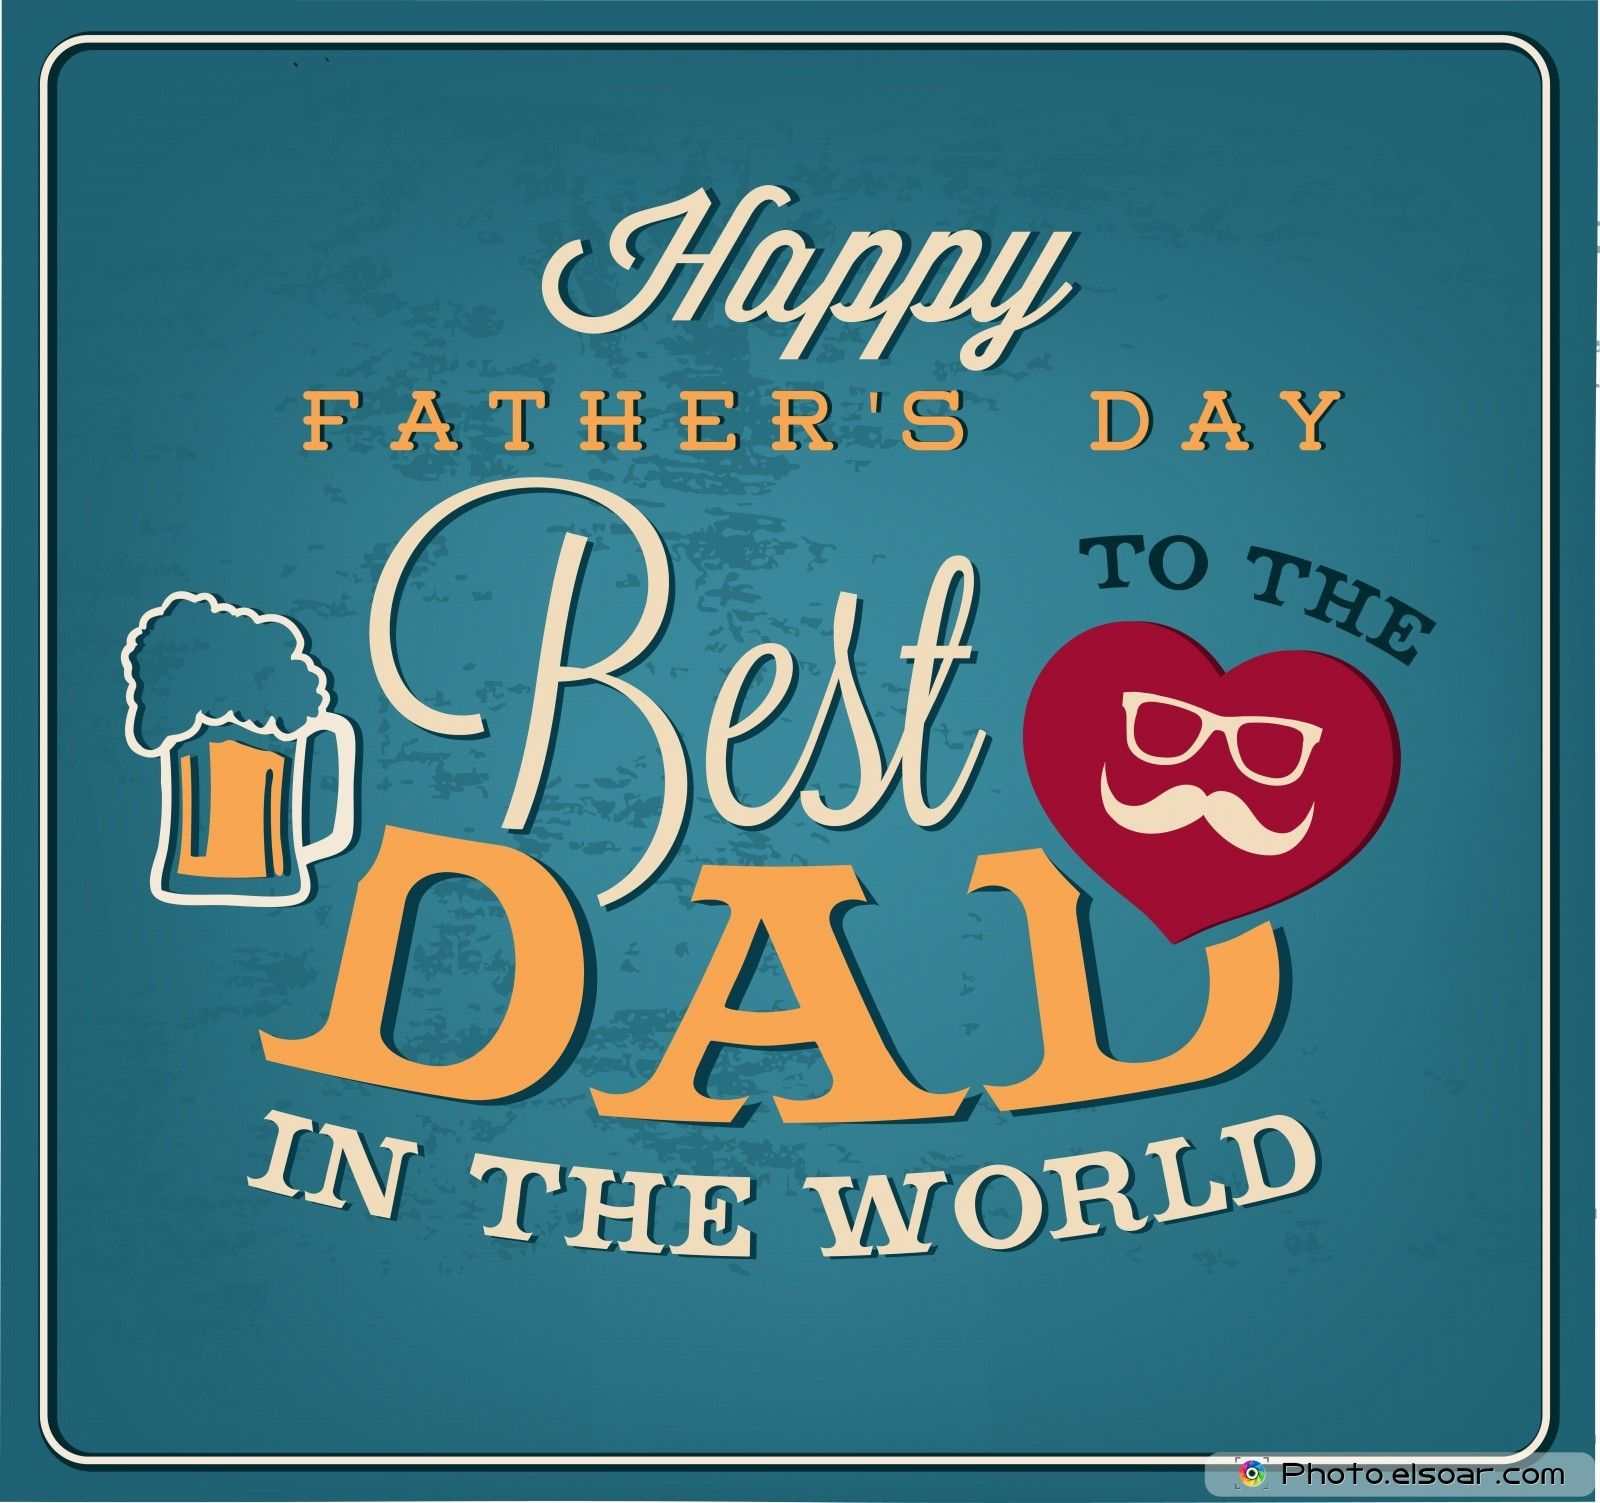 Happy fathers day printable funny cards happy fathers send day happy fathers day printable funny cards happy fathers send day ecard of the christmas e kristyandbryce Image collections